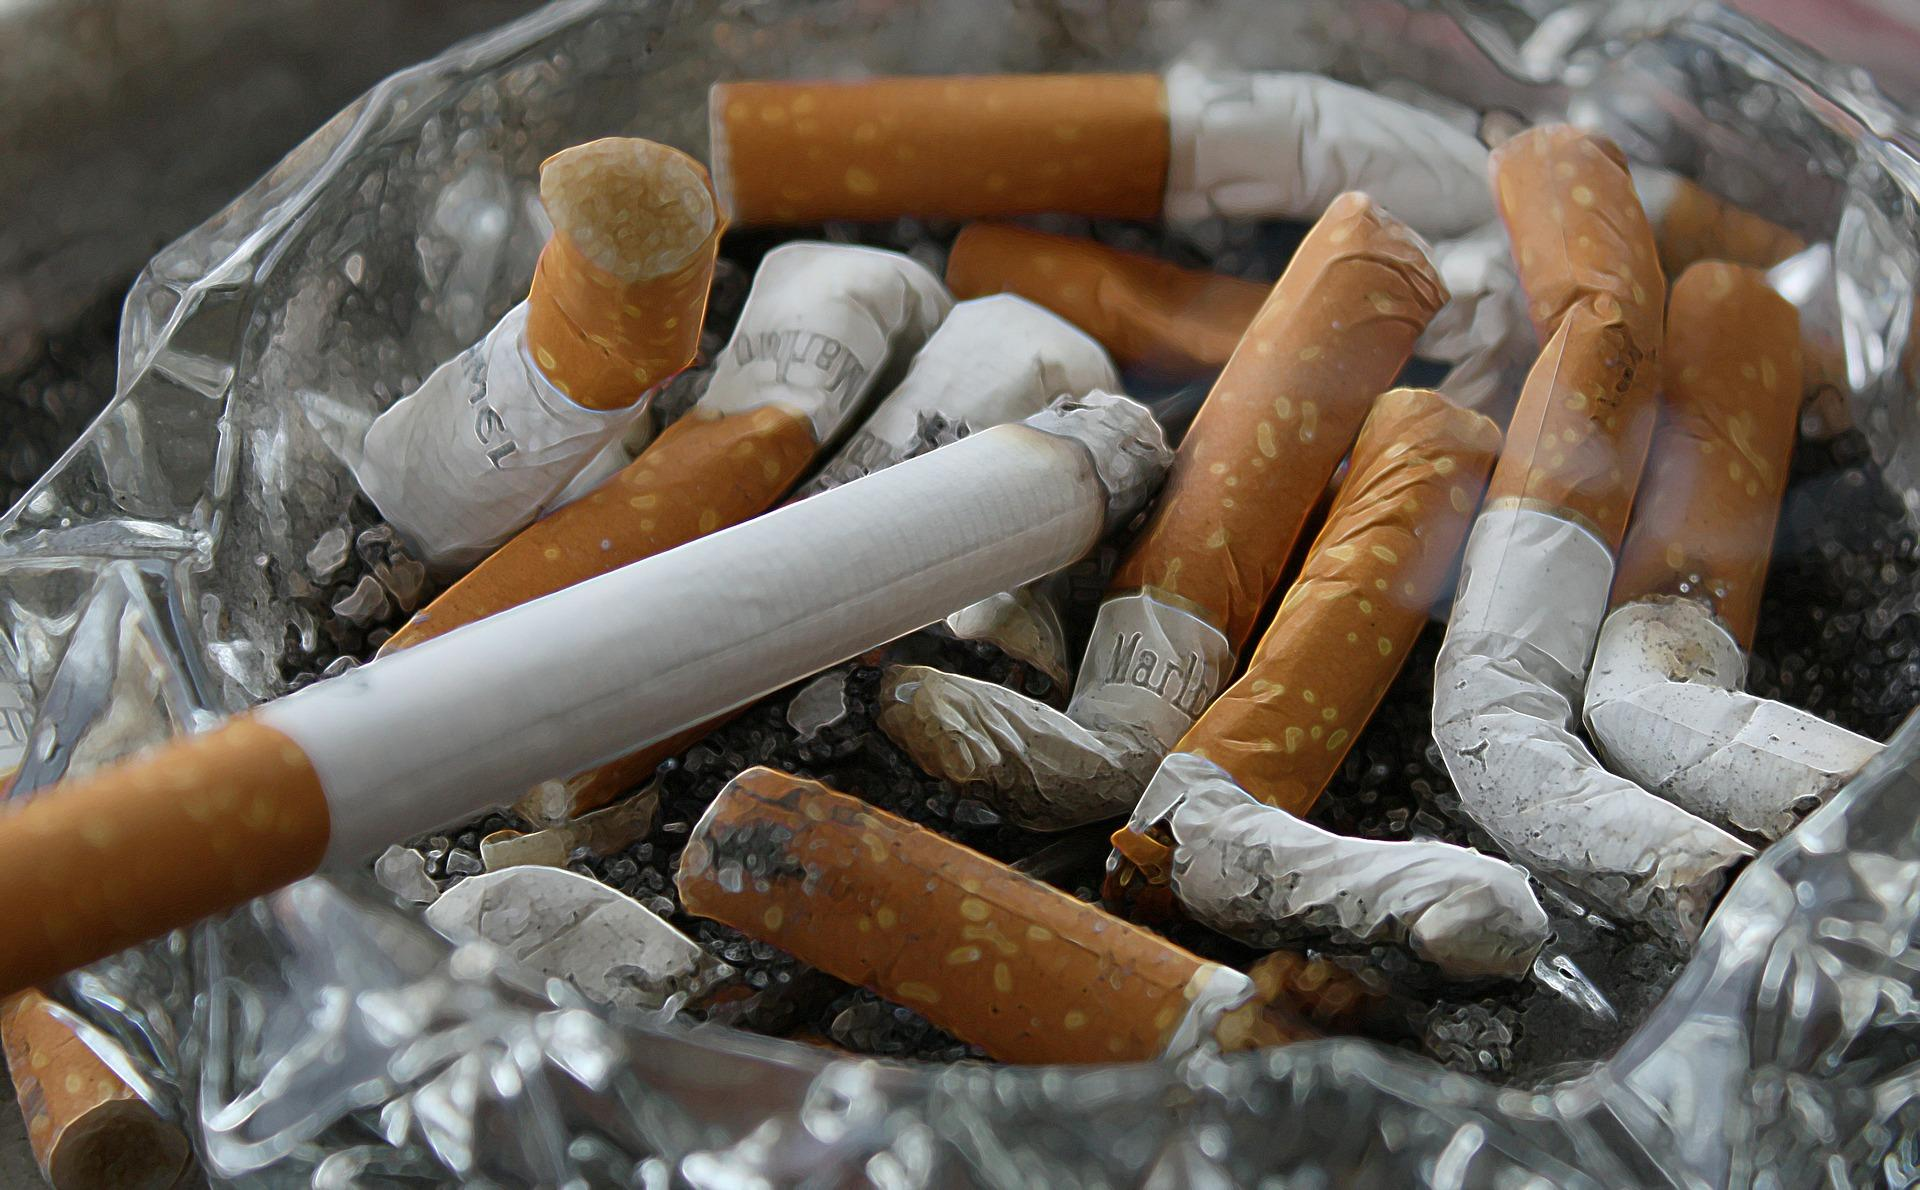 Kick the habit this Thursday for Great American Smokeout